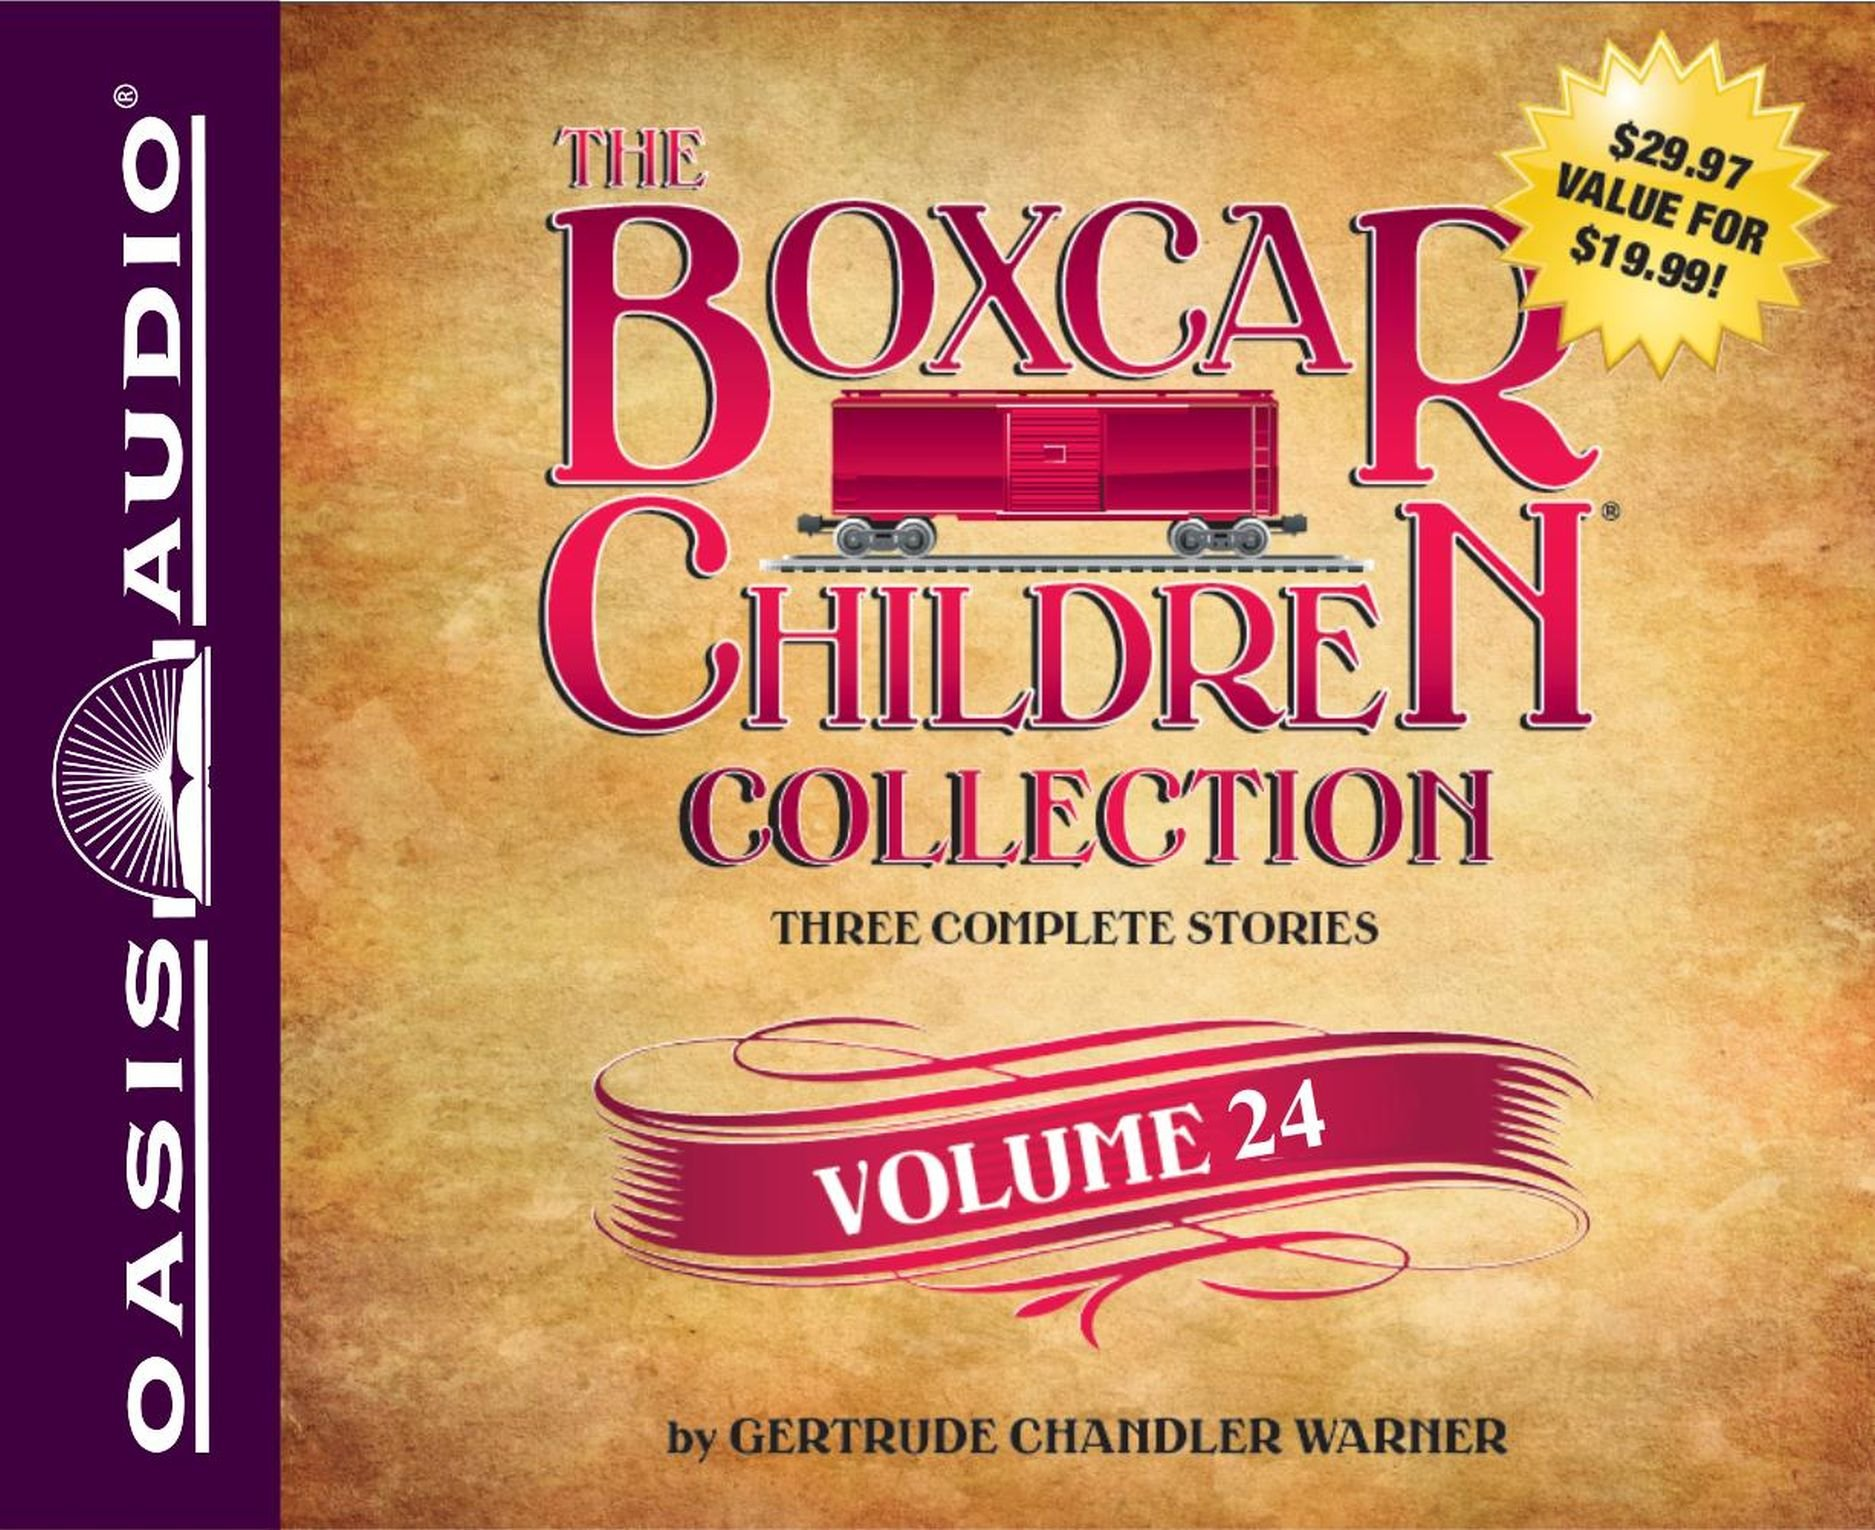 The Boxcar Children Collection Volume 24: The Mystery of the Pirate's Map, The Ghost Town Mystery, The Mystery in the Mall